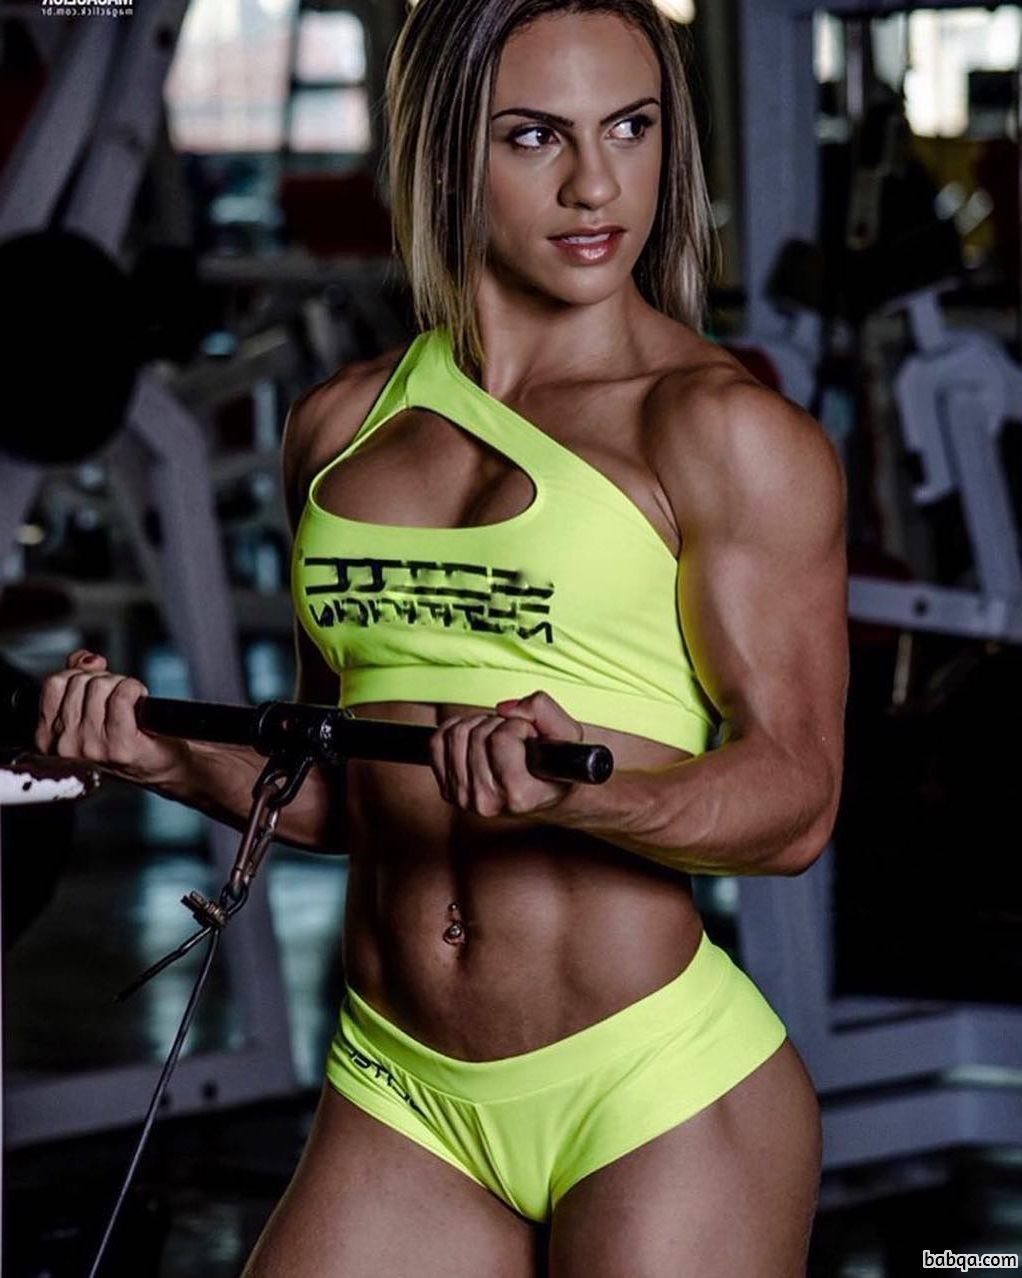 spicy female with strong body and muscle legs picture from flickr